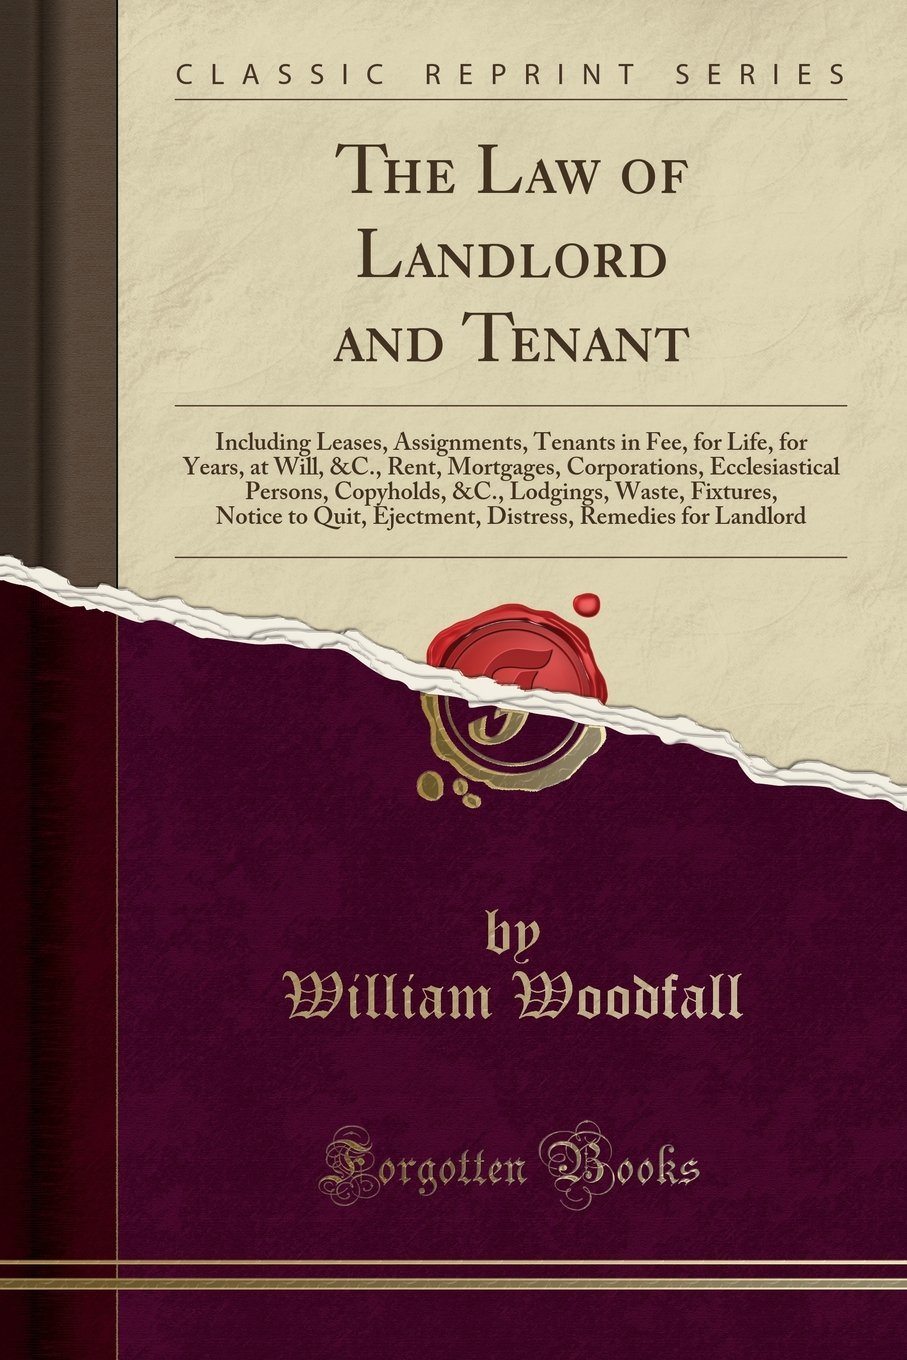 Download The Law of Landlord and Tenant: Including Leases, Assignments, Tenants in Fee, for Life, for Years, at Will, C, Rent, Mortgages, Corporations. Notice to Quit, Ejectment, Distress, Remedi pdf epub